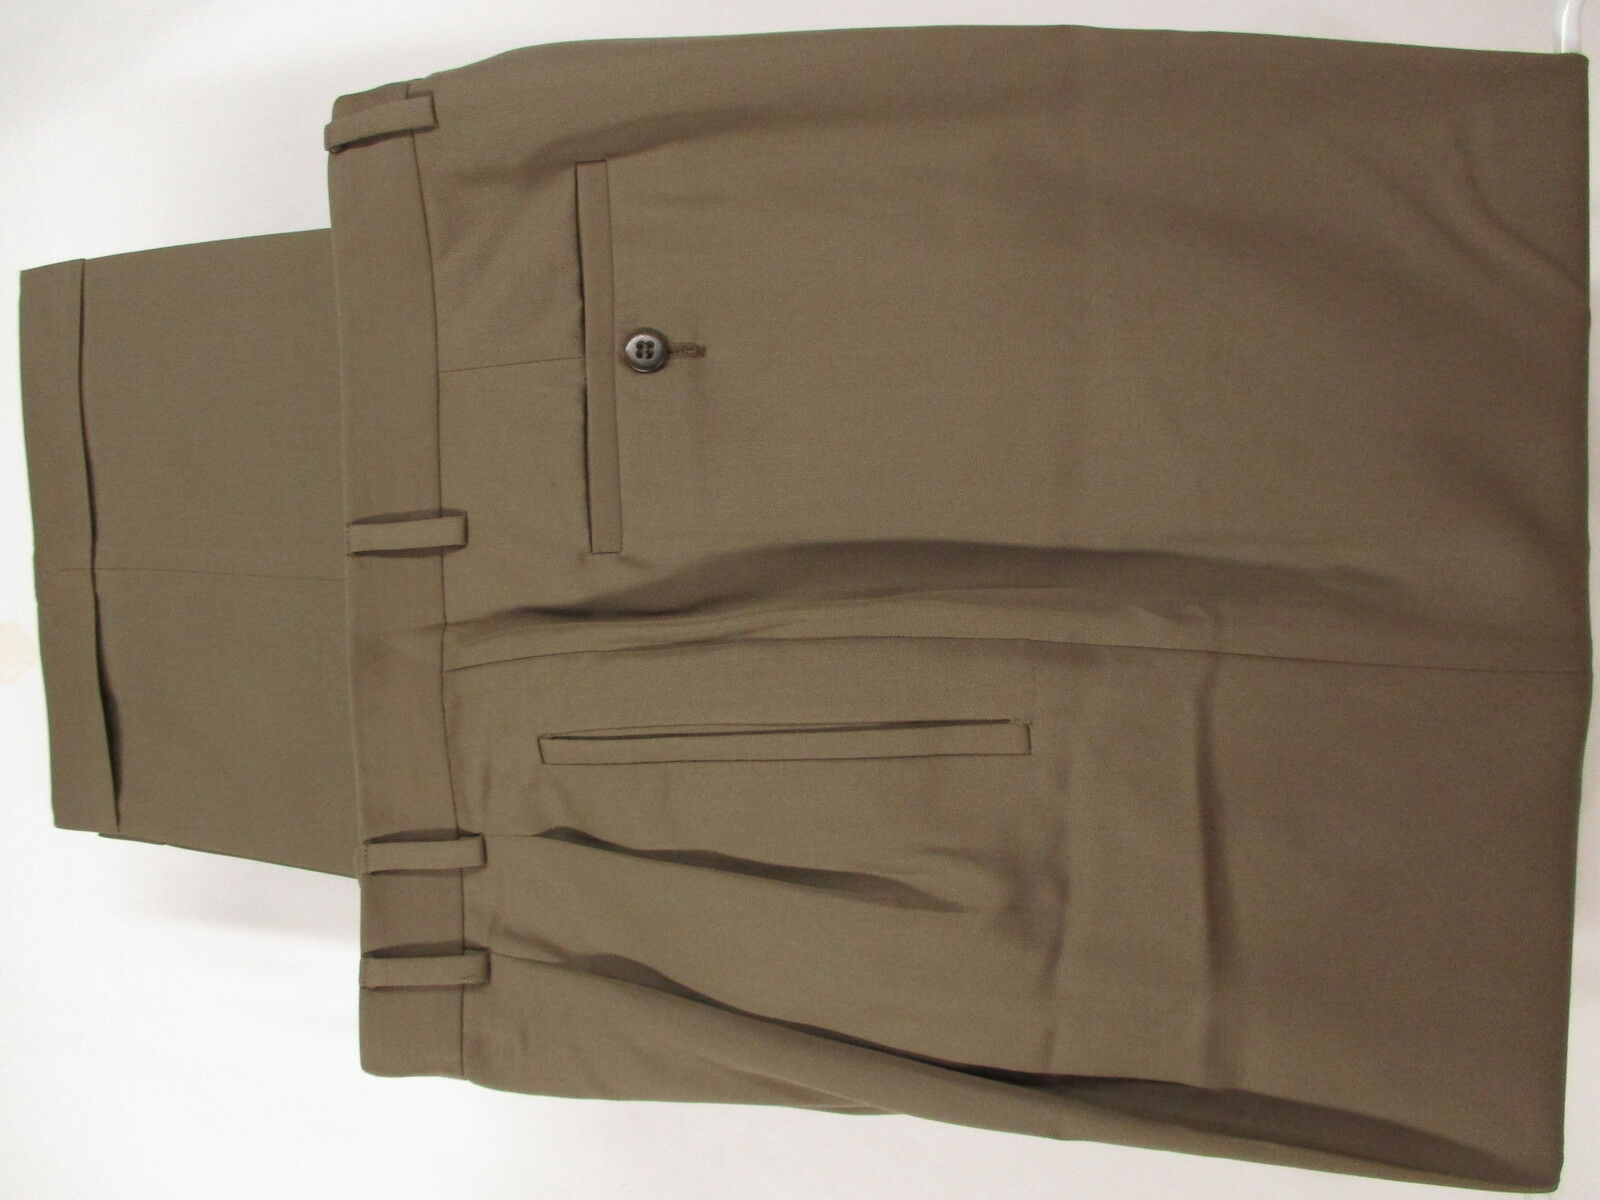 Zanella Andrew Mens Tan Pleated Dress Pants Size 36 34x28.5